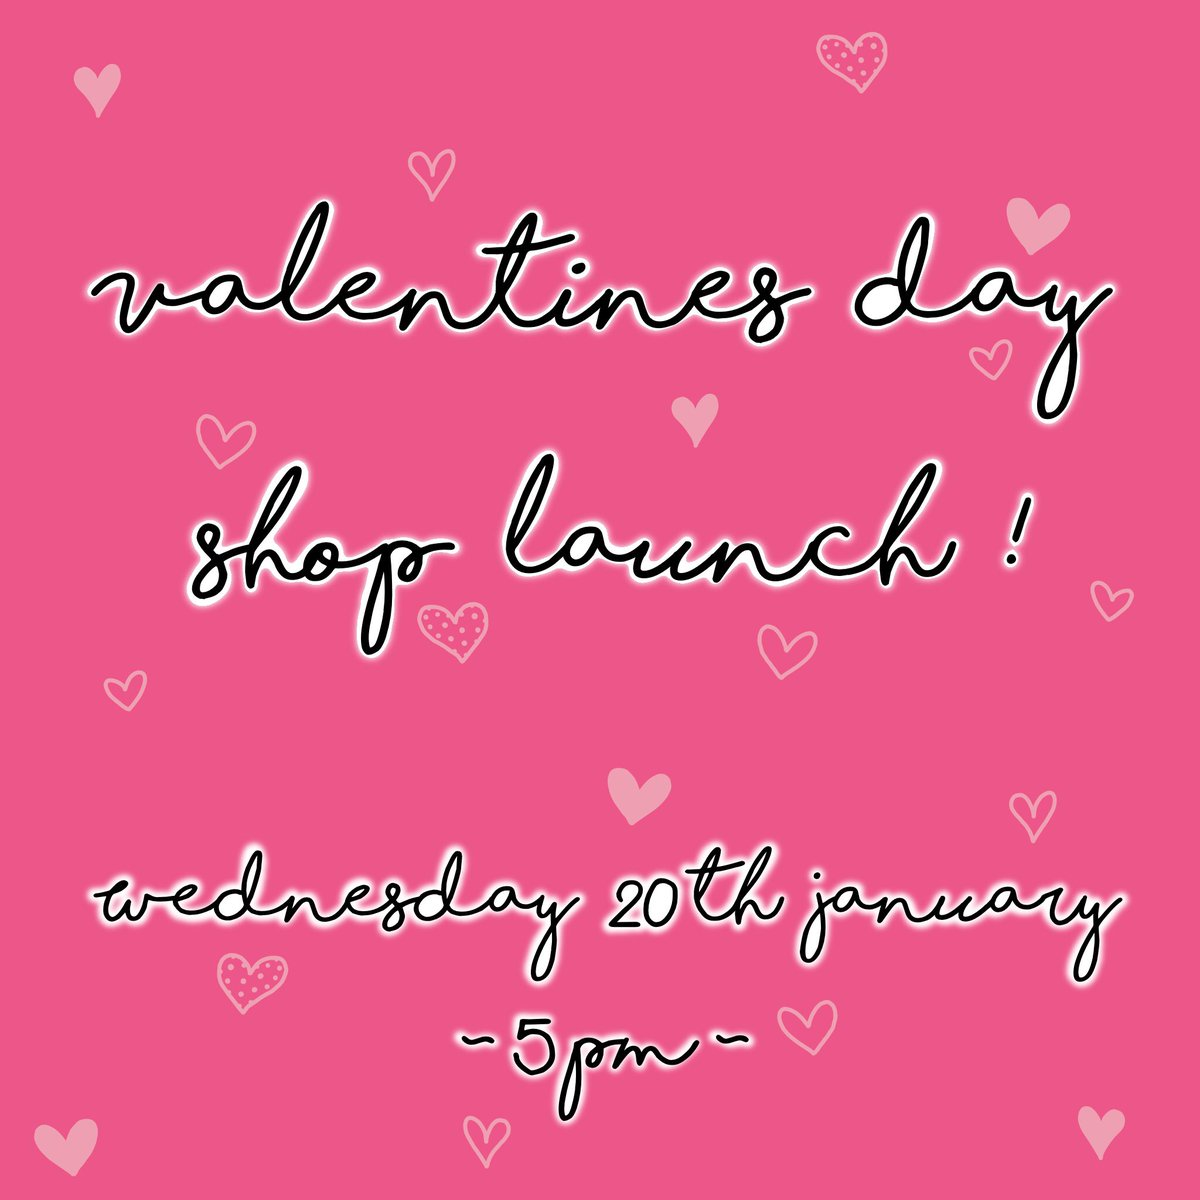 Valentines Day Collection ~ Drop 1 ~ Wednesday 20th January, 5pm! 🌹  I'm excited the announce my Valentines Day Collection which will be launching in 3 parts, the first being next Wednesday 20th January 💗  #supportsmallbusiness #sheffieldsmallbusiness #valentinesday #resinart